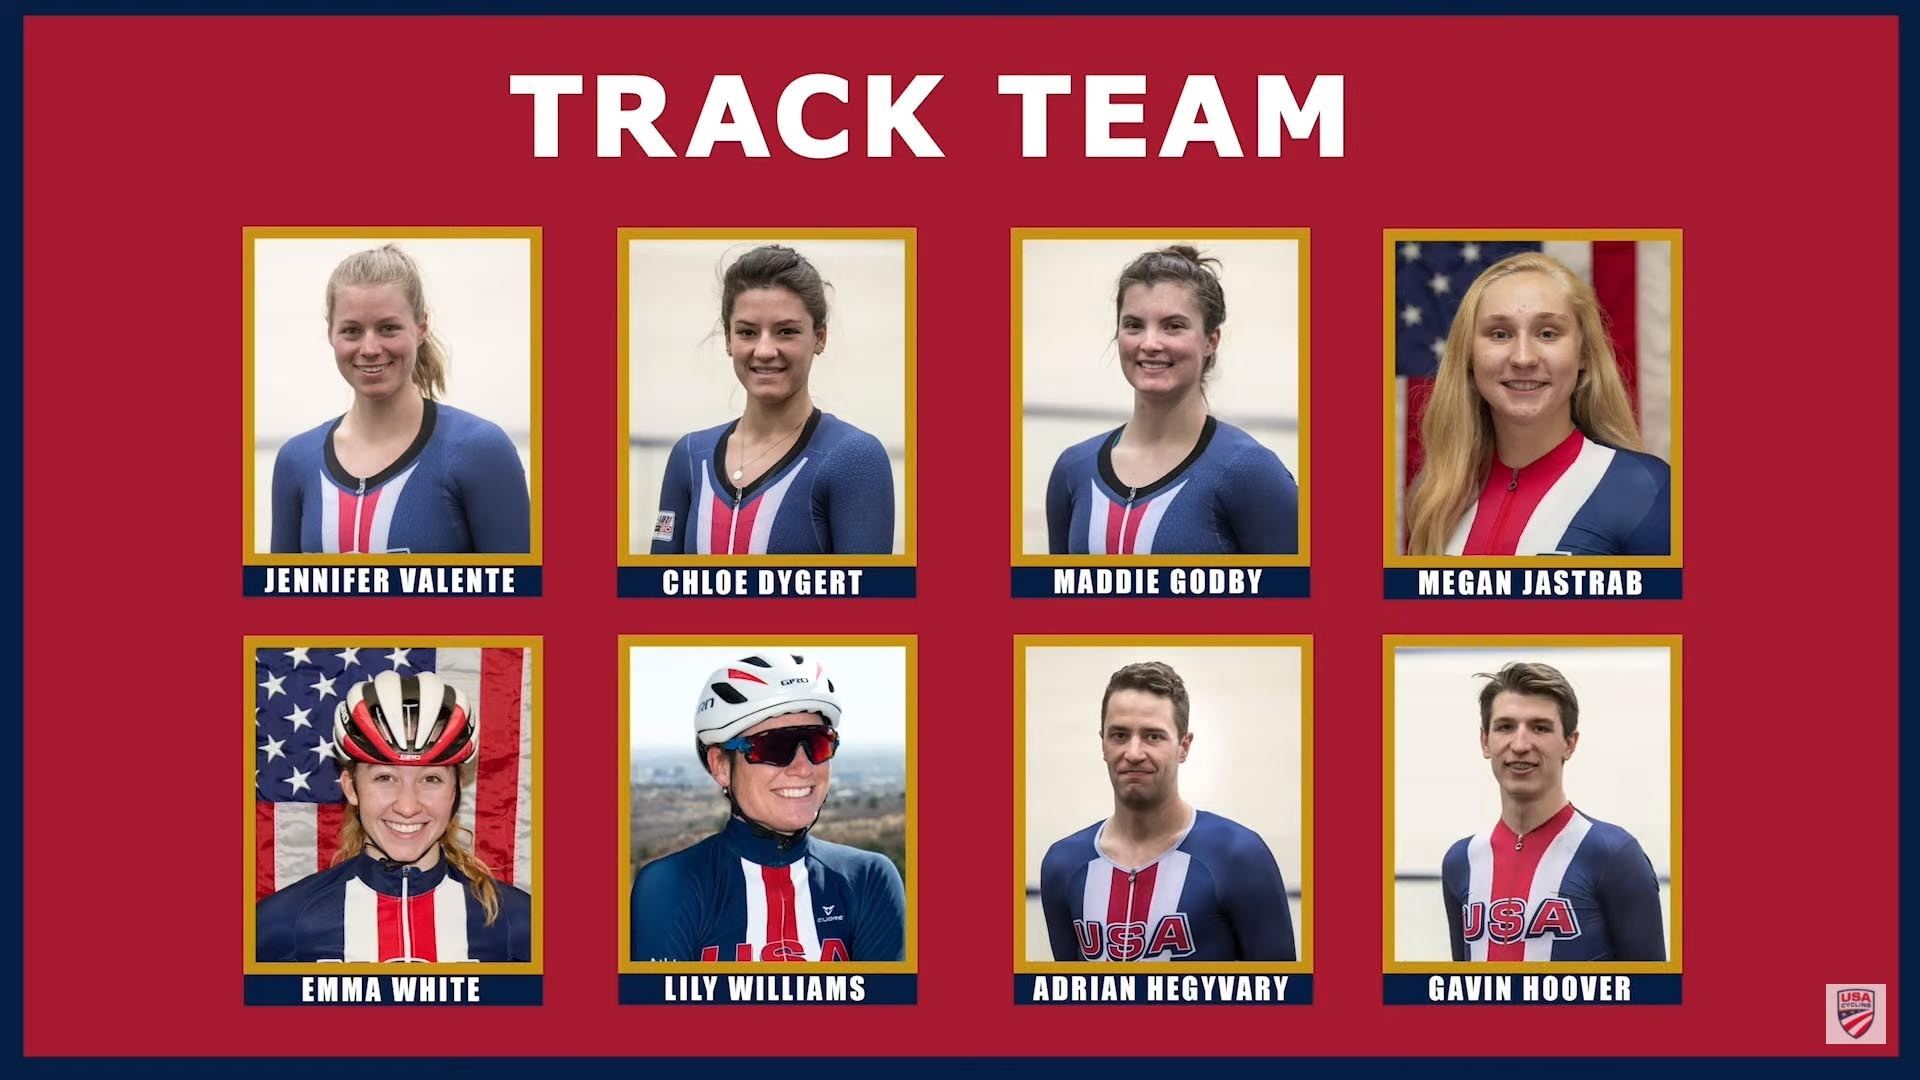 Team USA's track cycling team roster for the Tokyo Olympics